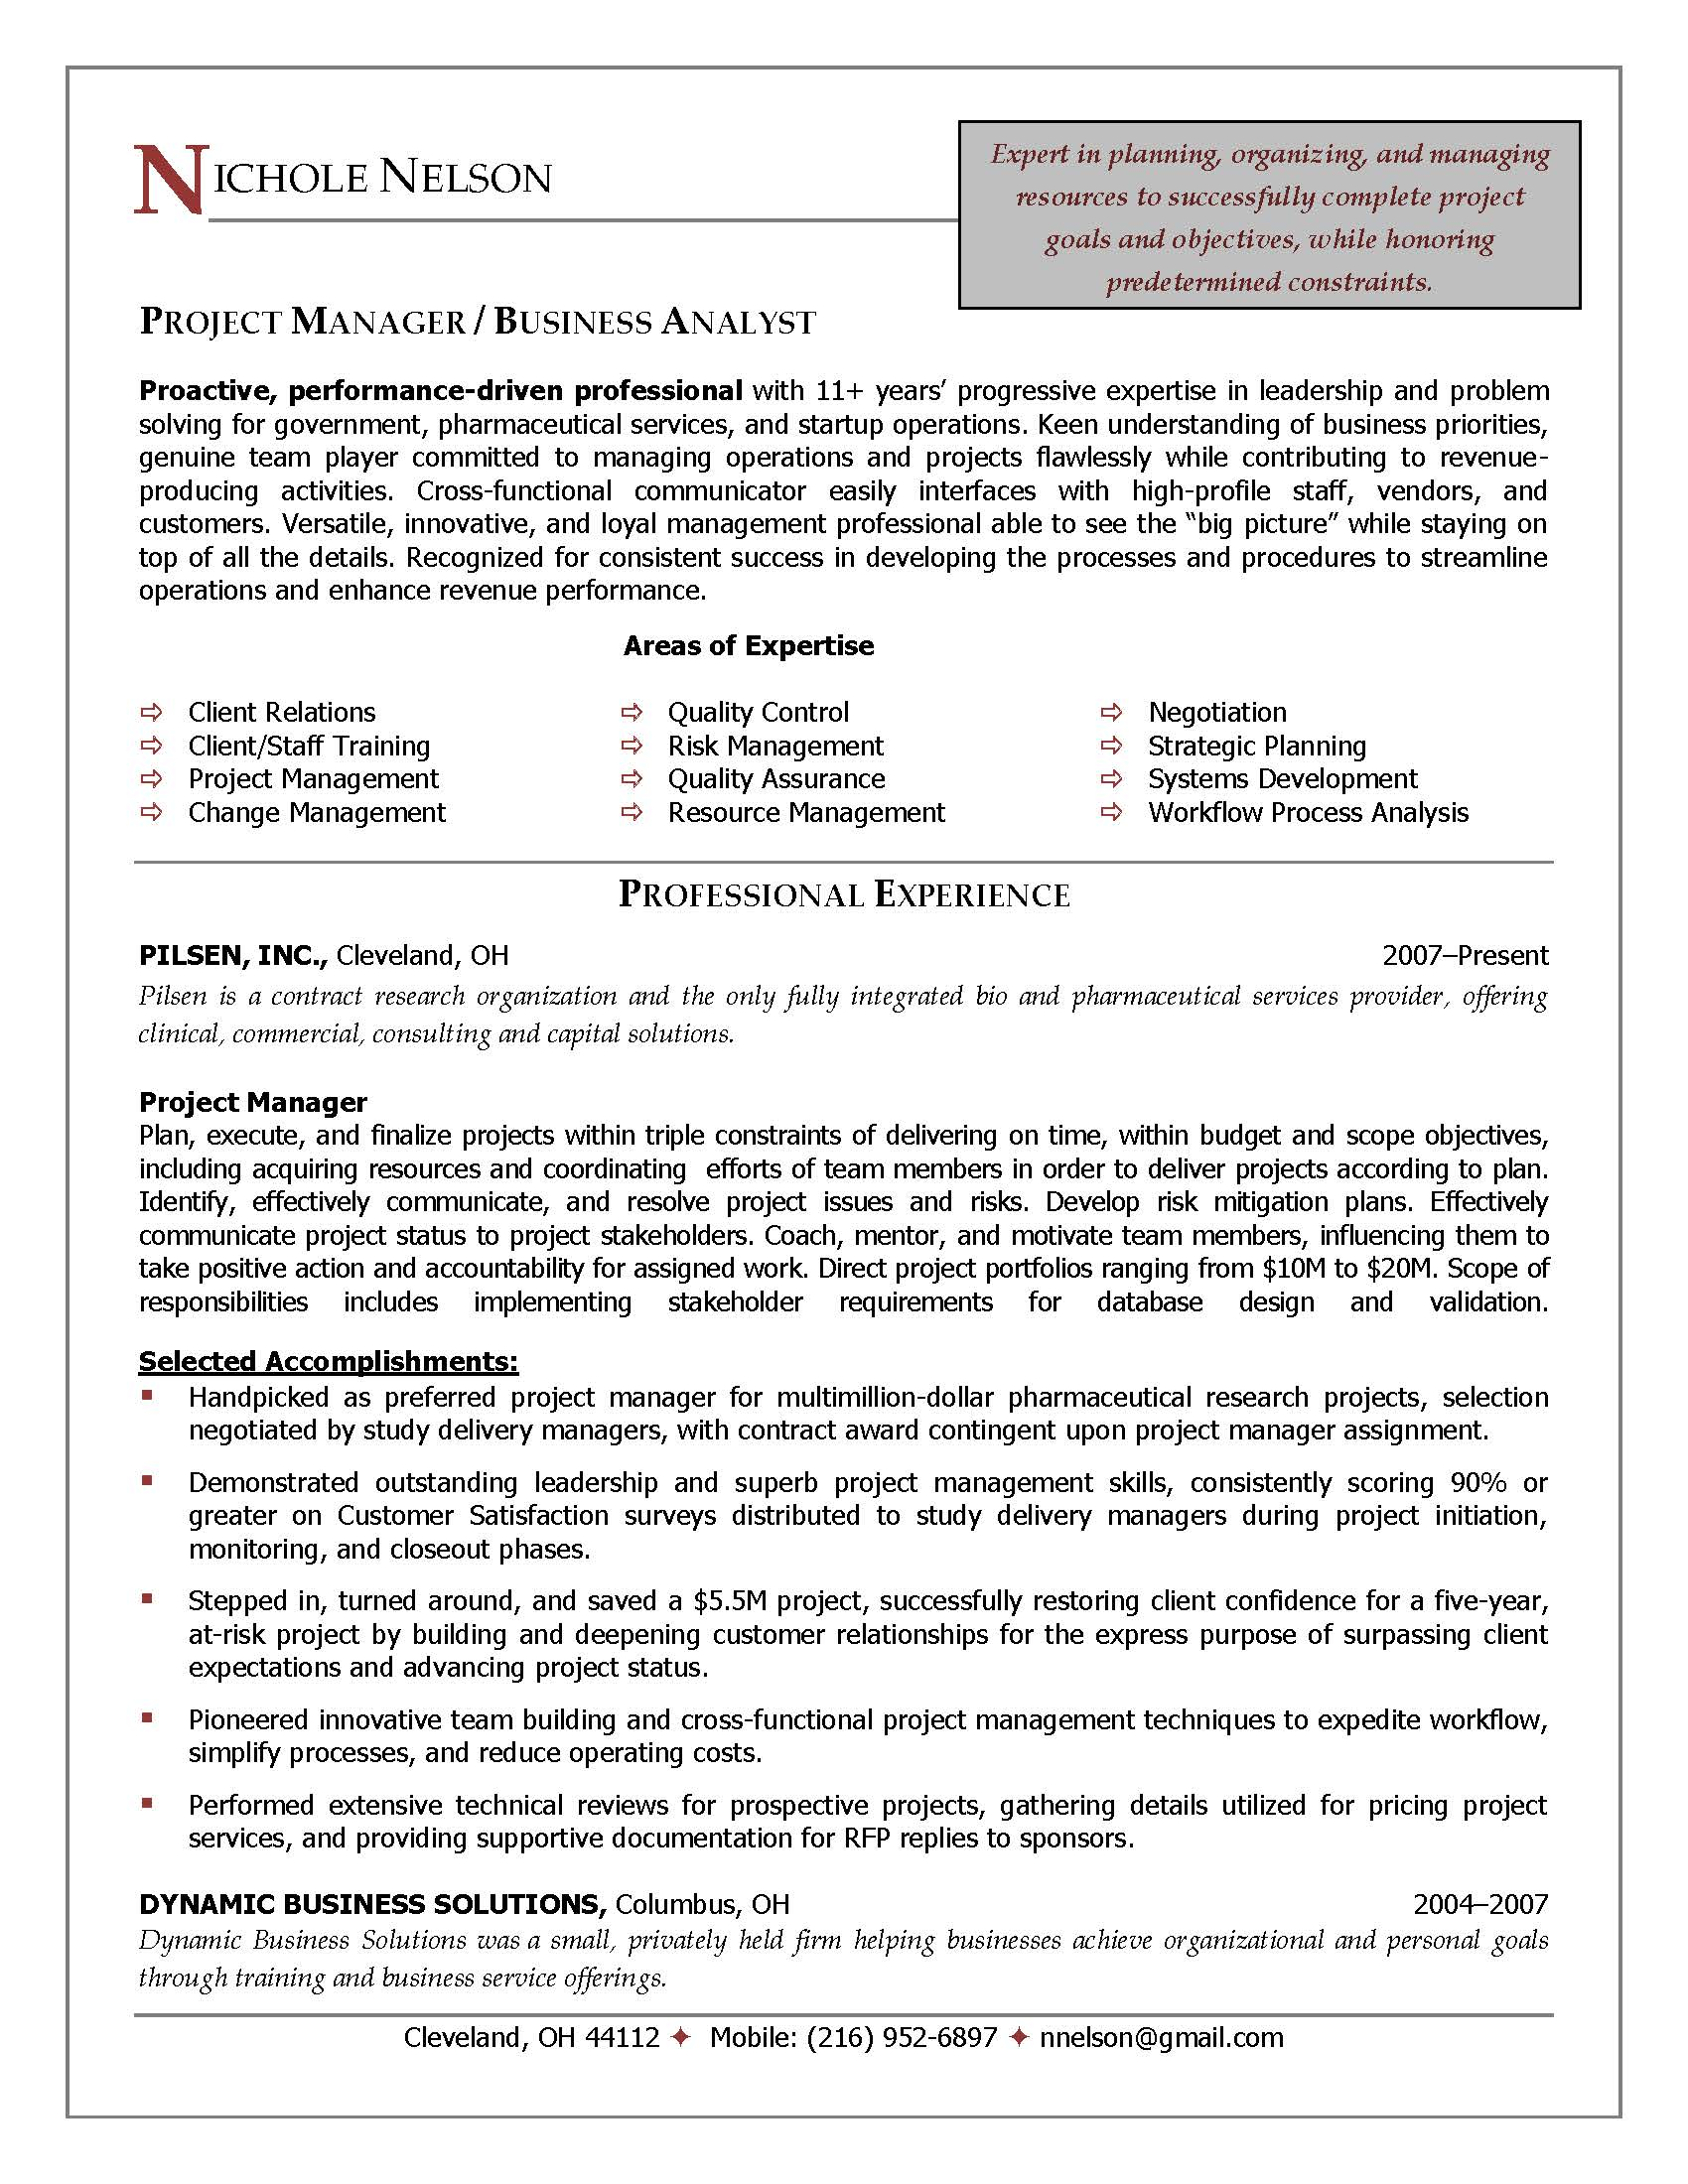 Program Manager Sample Resume,program manager resume The best ...